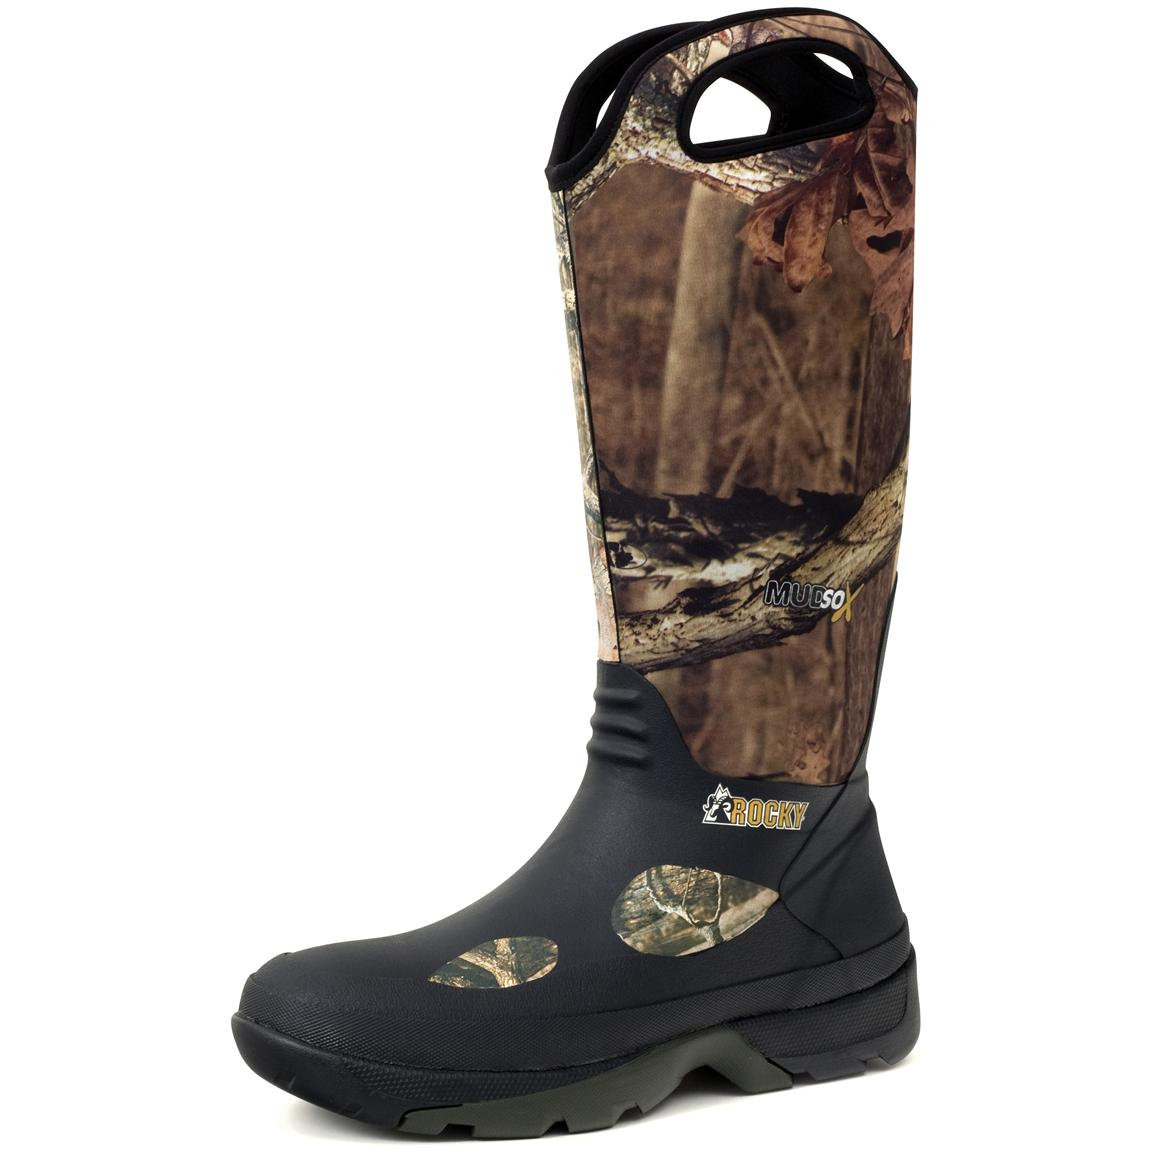 Men's Rocky® 16 inch MudSox Rubber Boots, M.O.B.U. Infinity